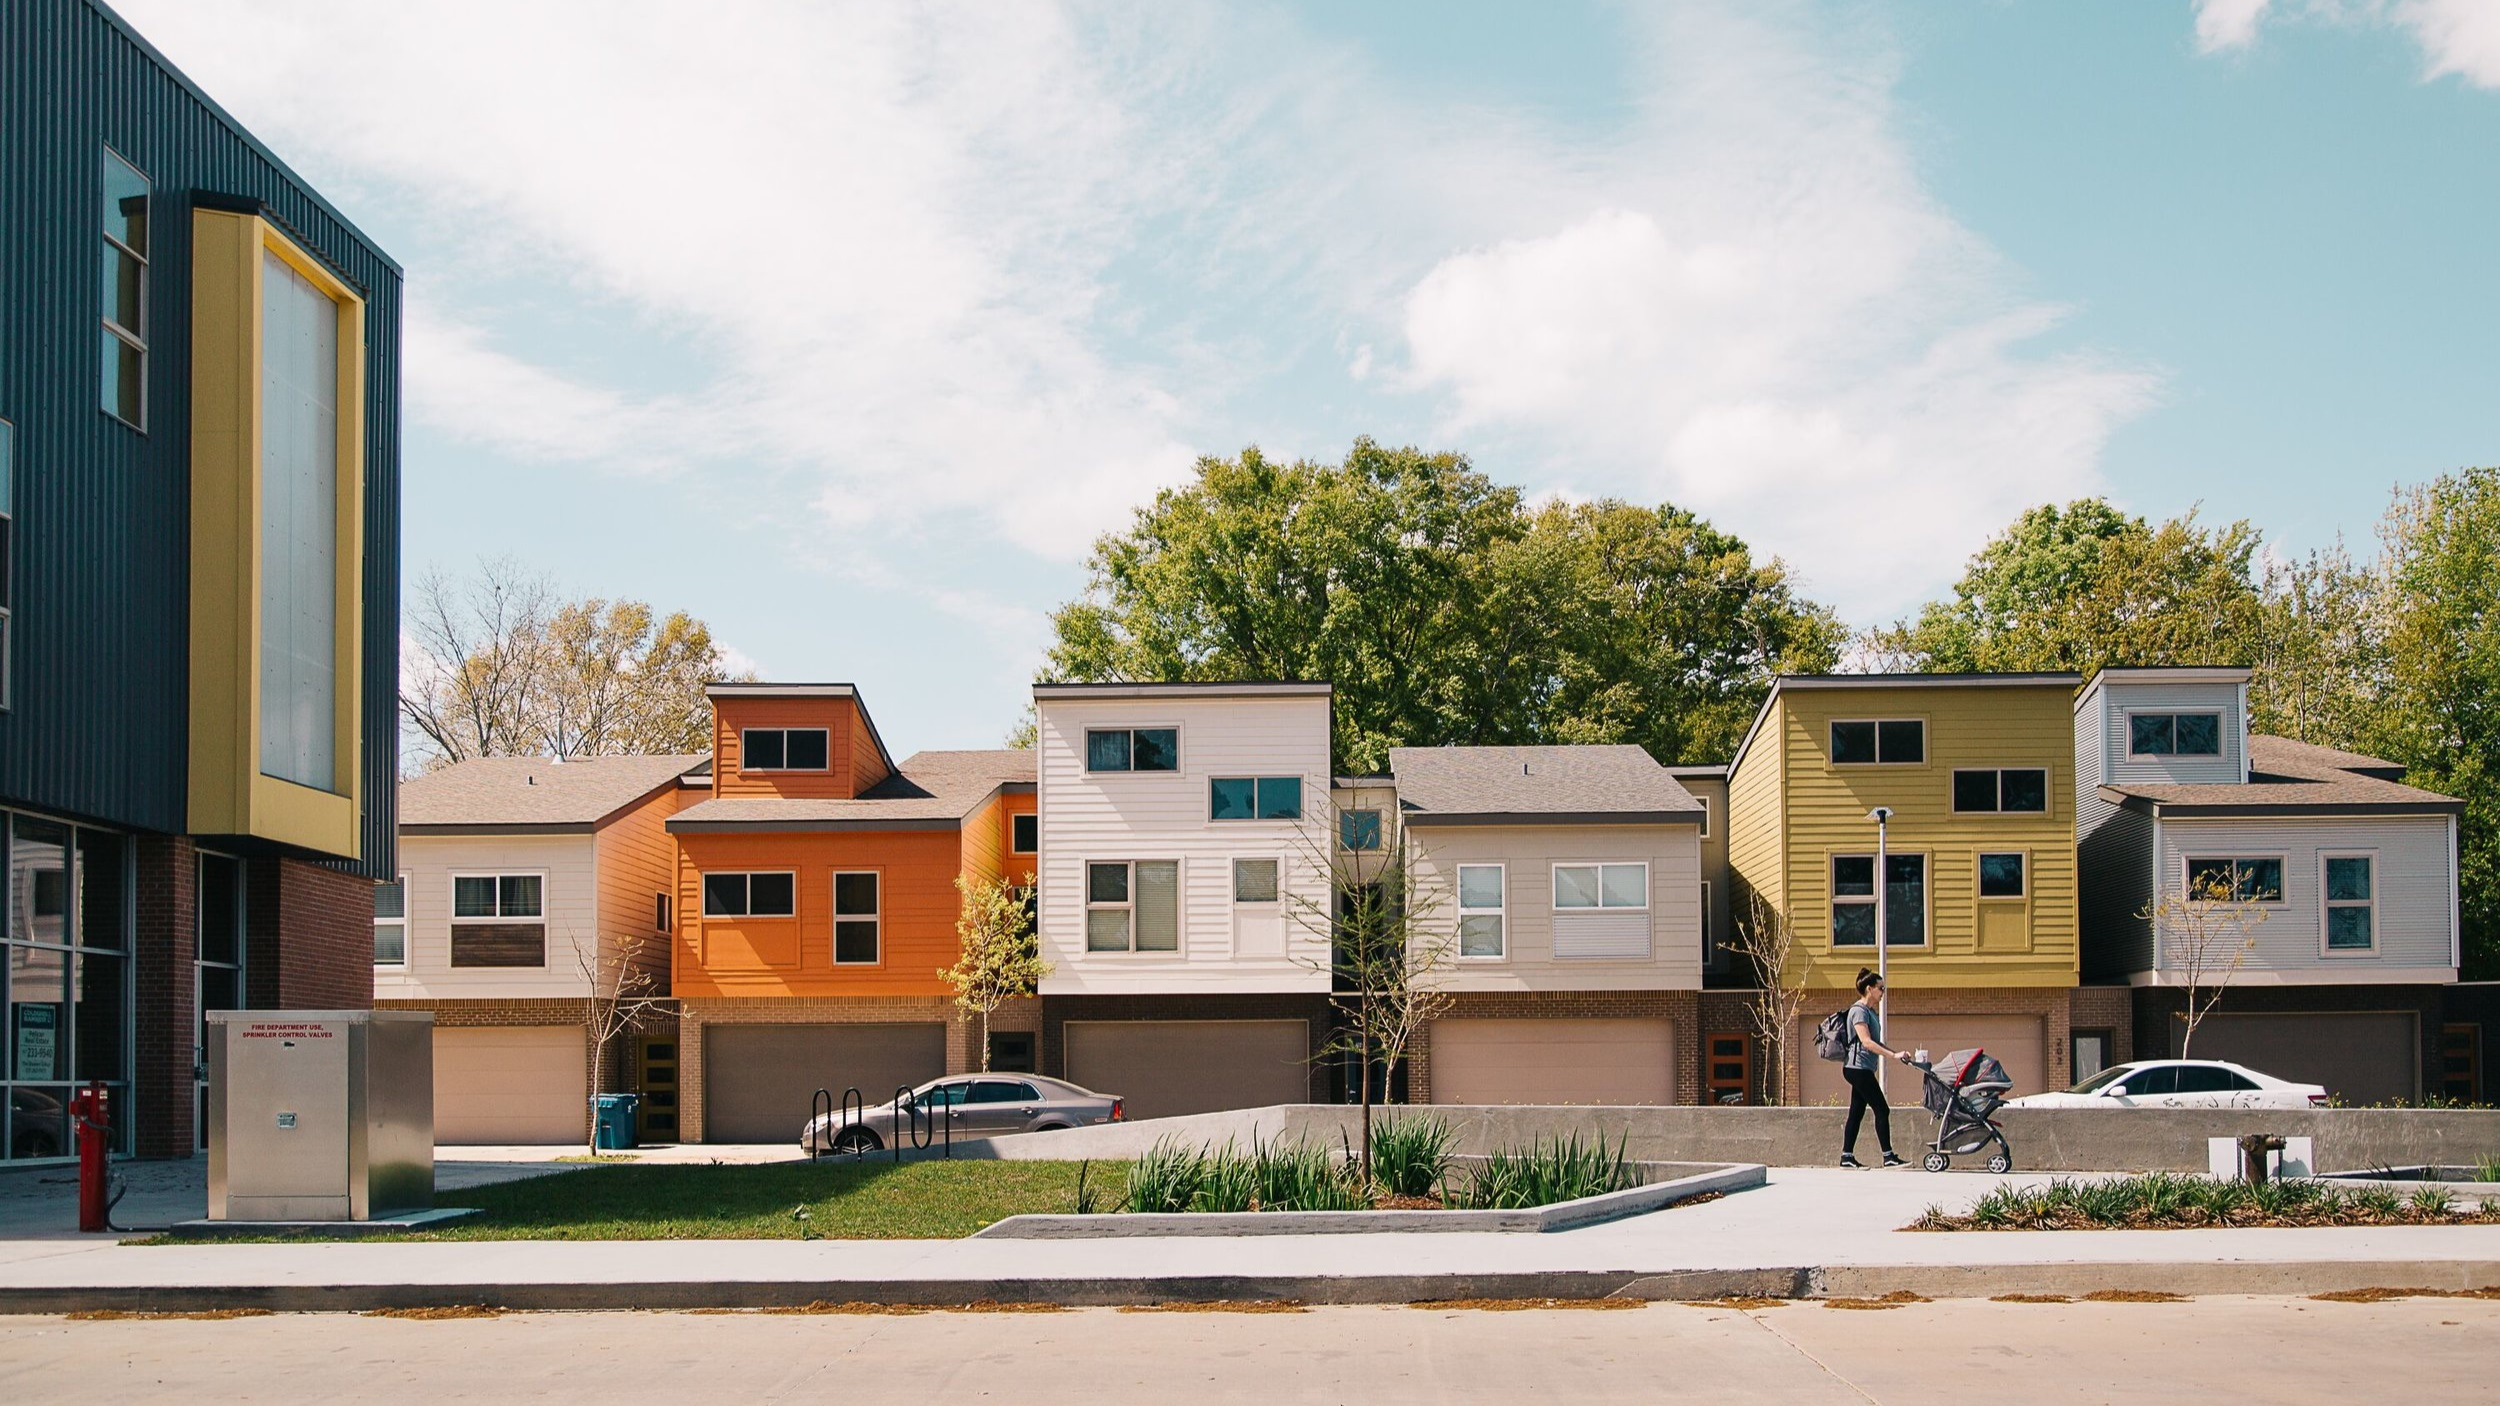 Urban Design - Designing smart and livable neighborhoods that enhance community by designing for people first.